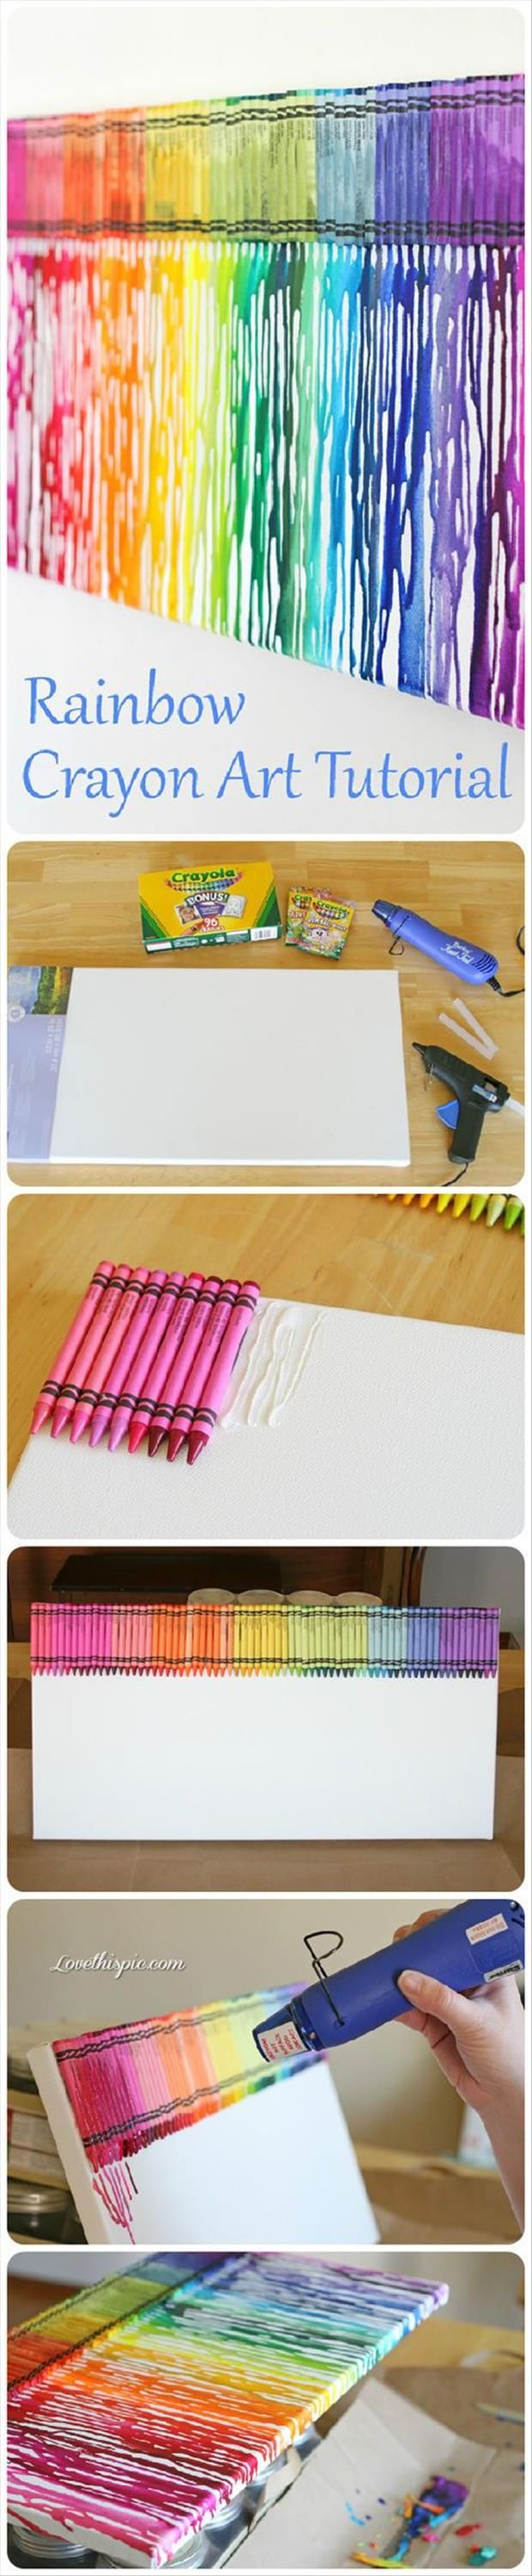 color crayon art : 25 Best Ideas About Crayon Art On Pinterest Melting Crayon Canvas Crayon Canvas Art And Melt Crayons